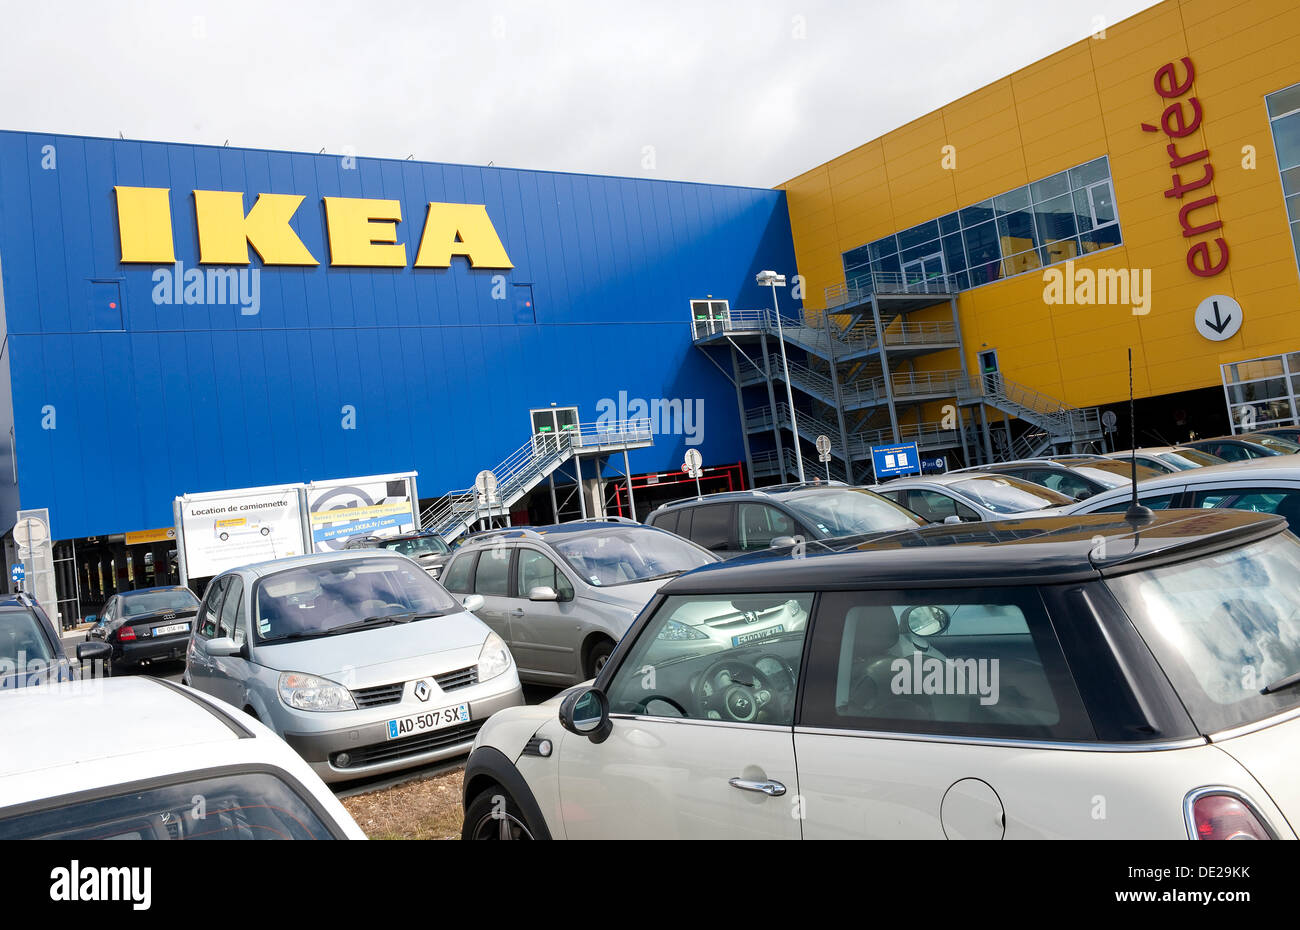 Store Caen Ikea Store Stock Photos And Ikea Store Stock Images Alamy